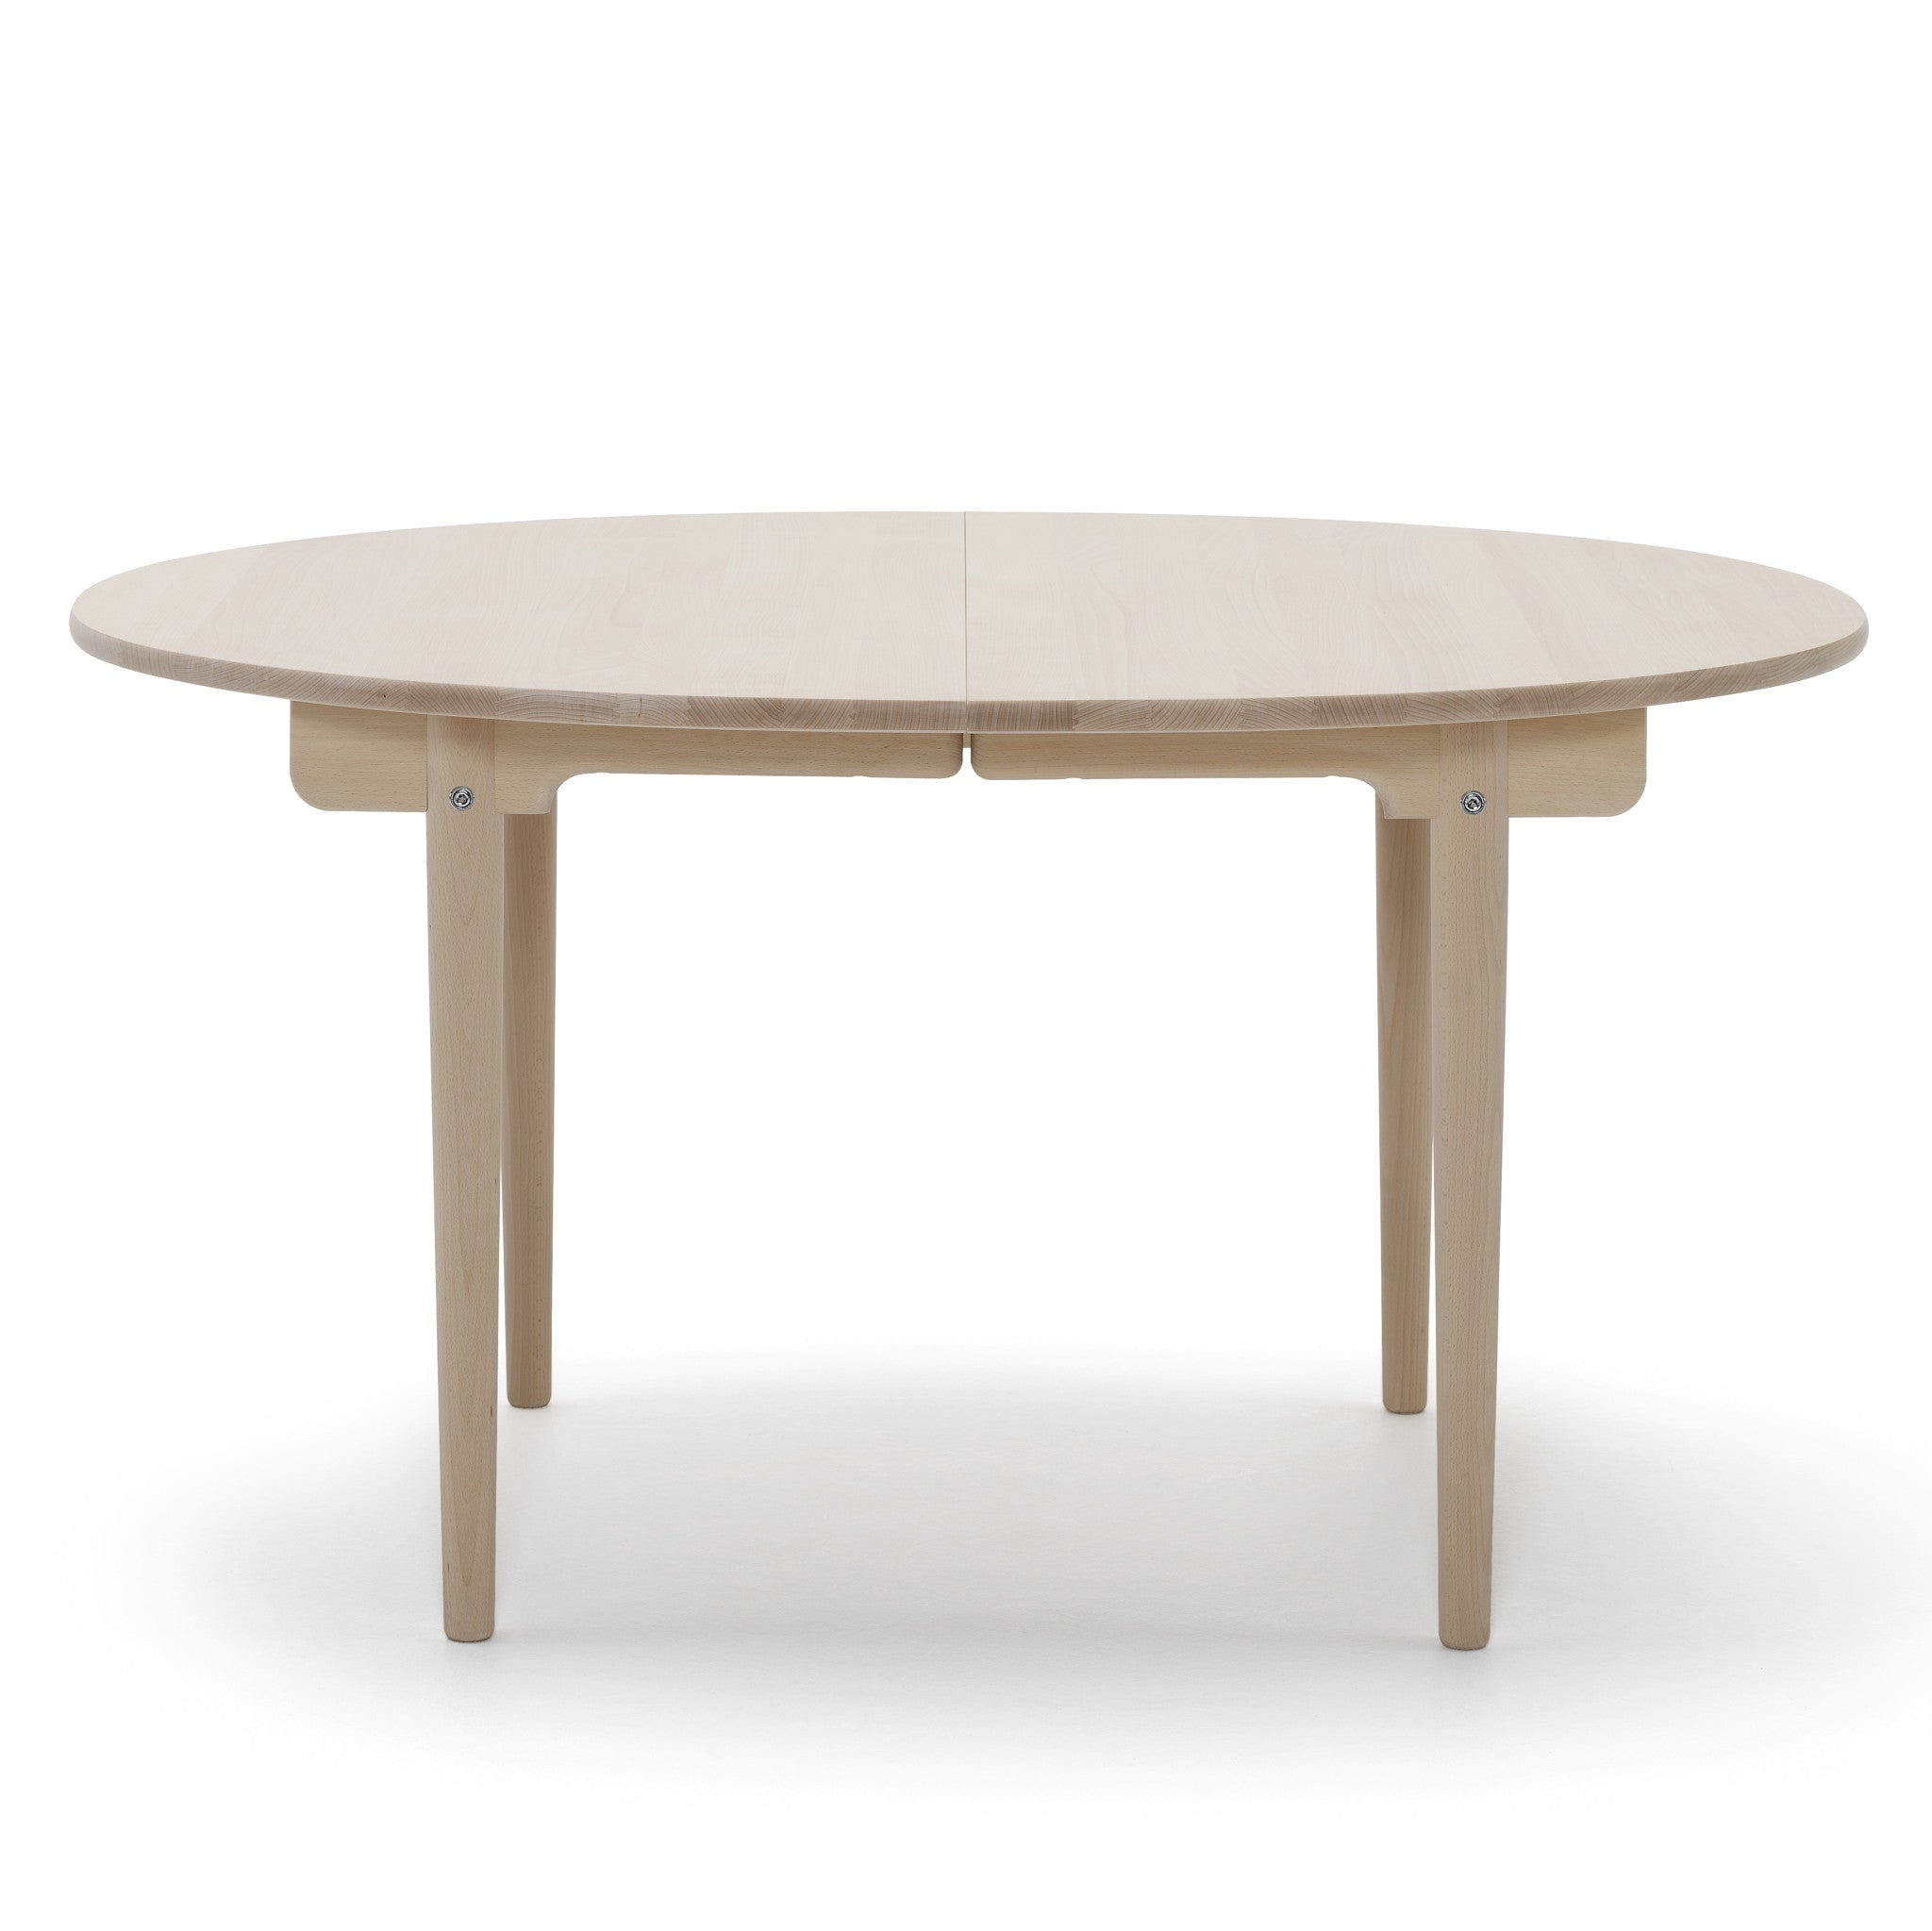 CH337 Dining Table by Hans J. Wegner